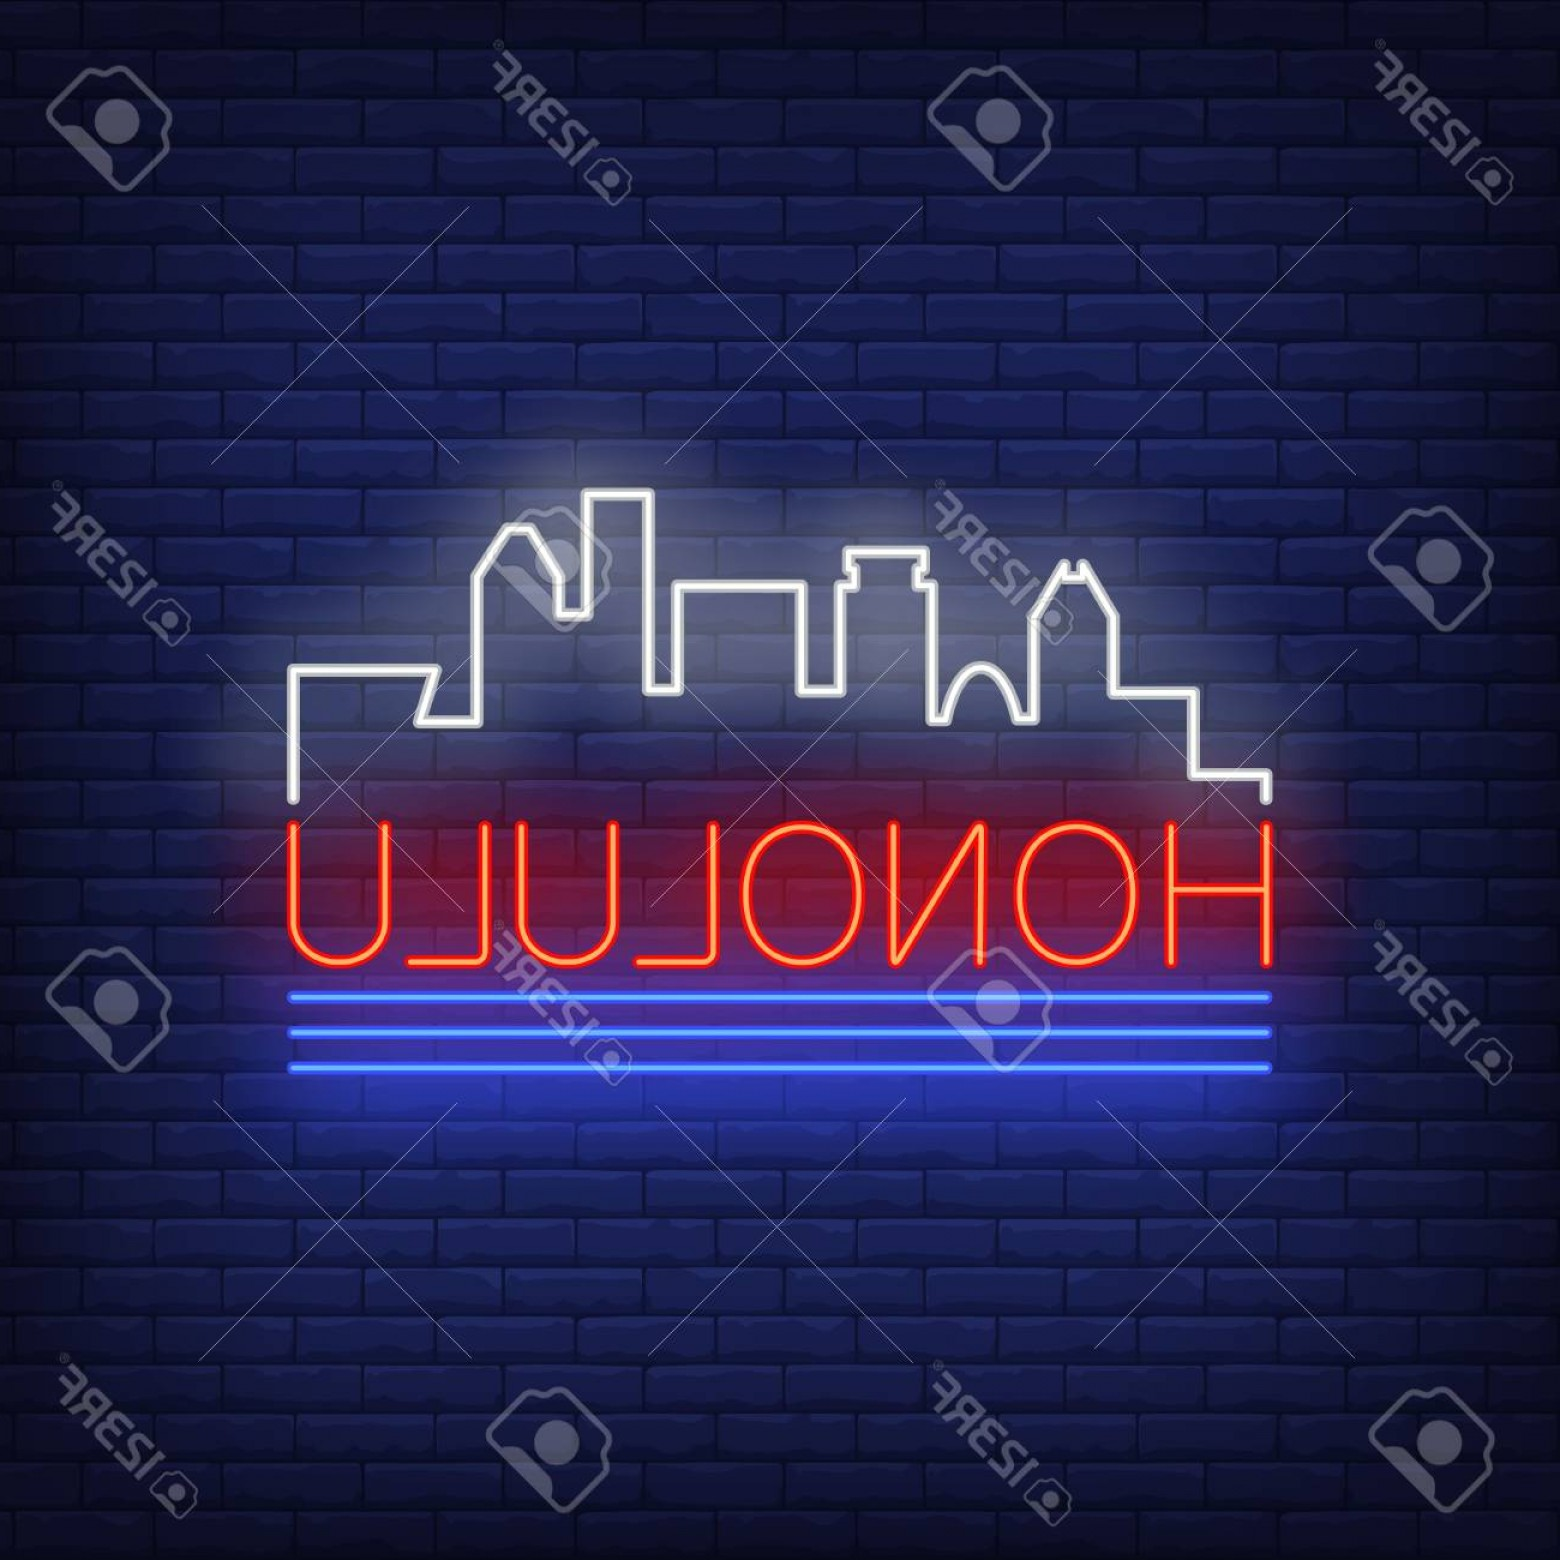 City Of Honolulu At Night Vector: Photostock Vector Honolulu Neon Lettering And City Buildings Silhouette Sightseeing Tourism Travel Design Night Bright